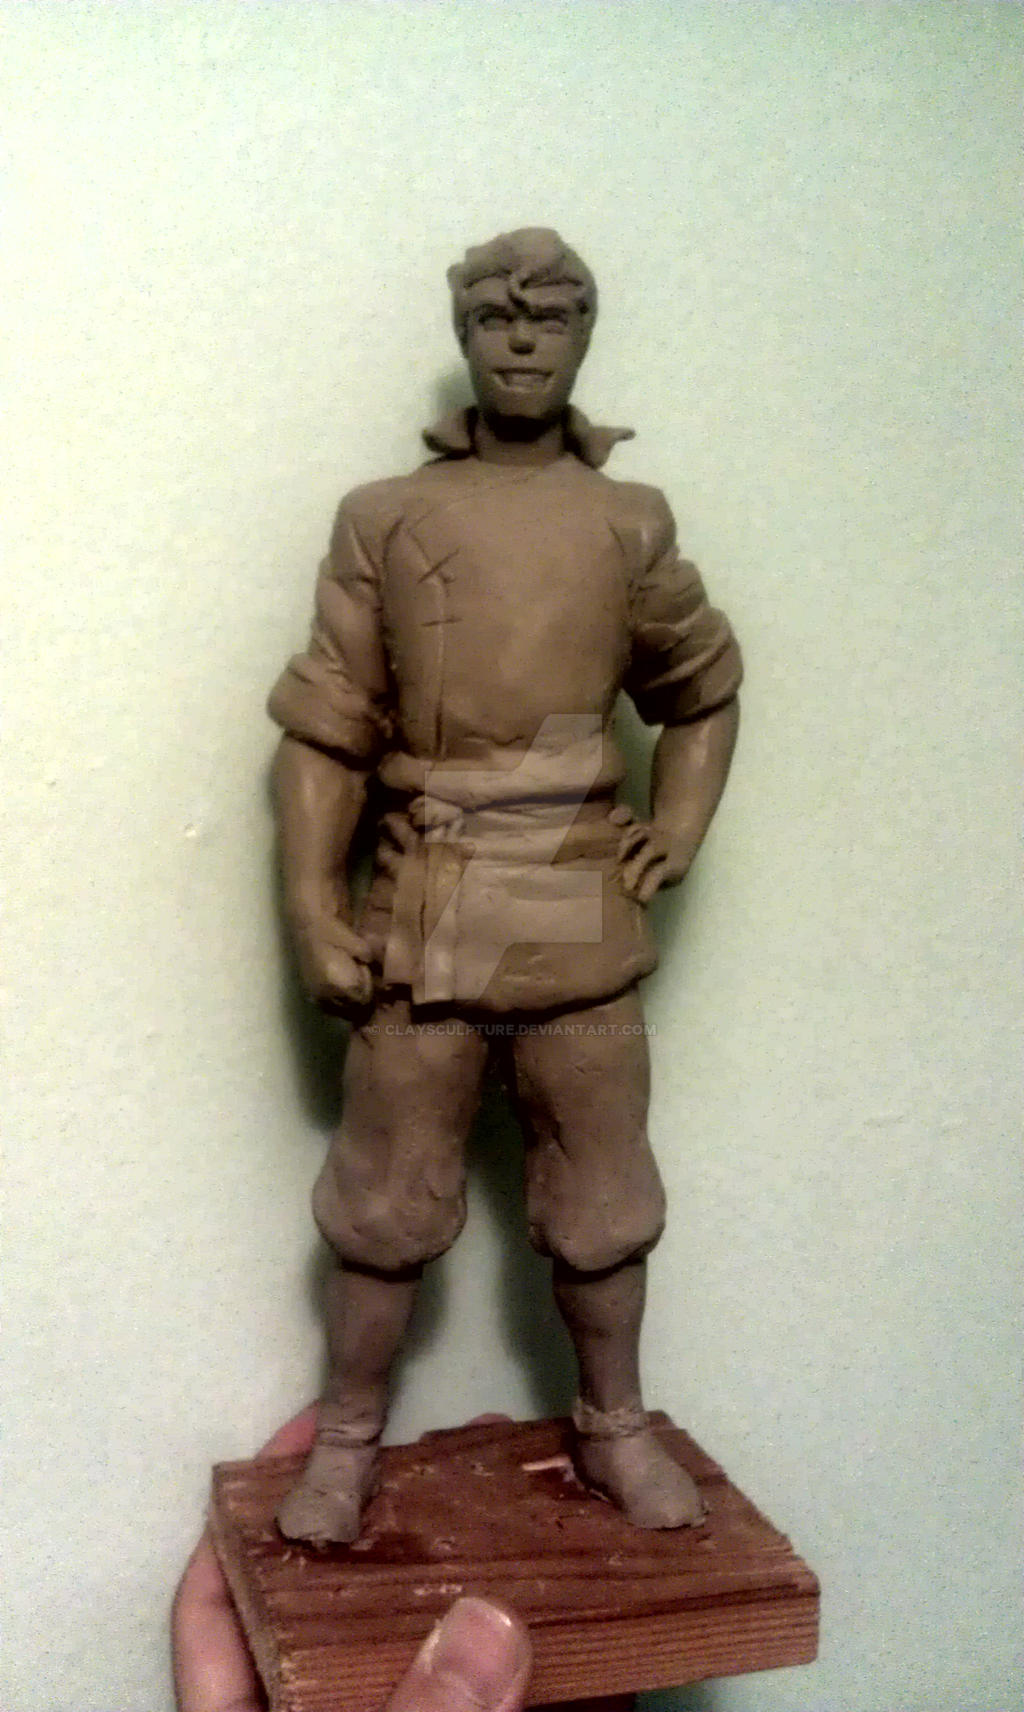 Bolin sculpture by Claysculpture